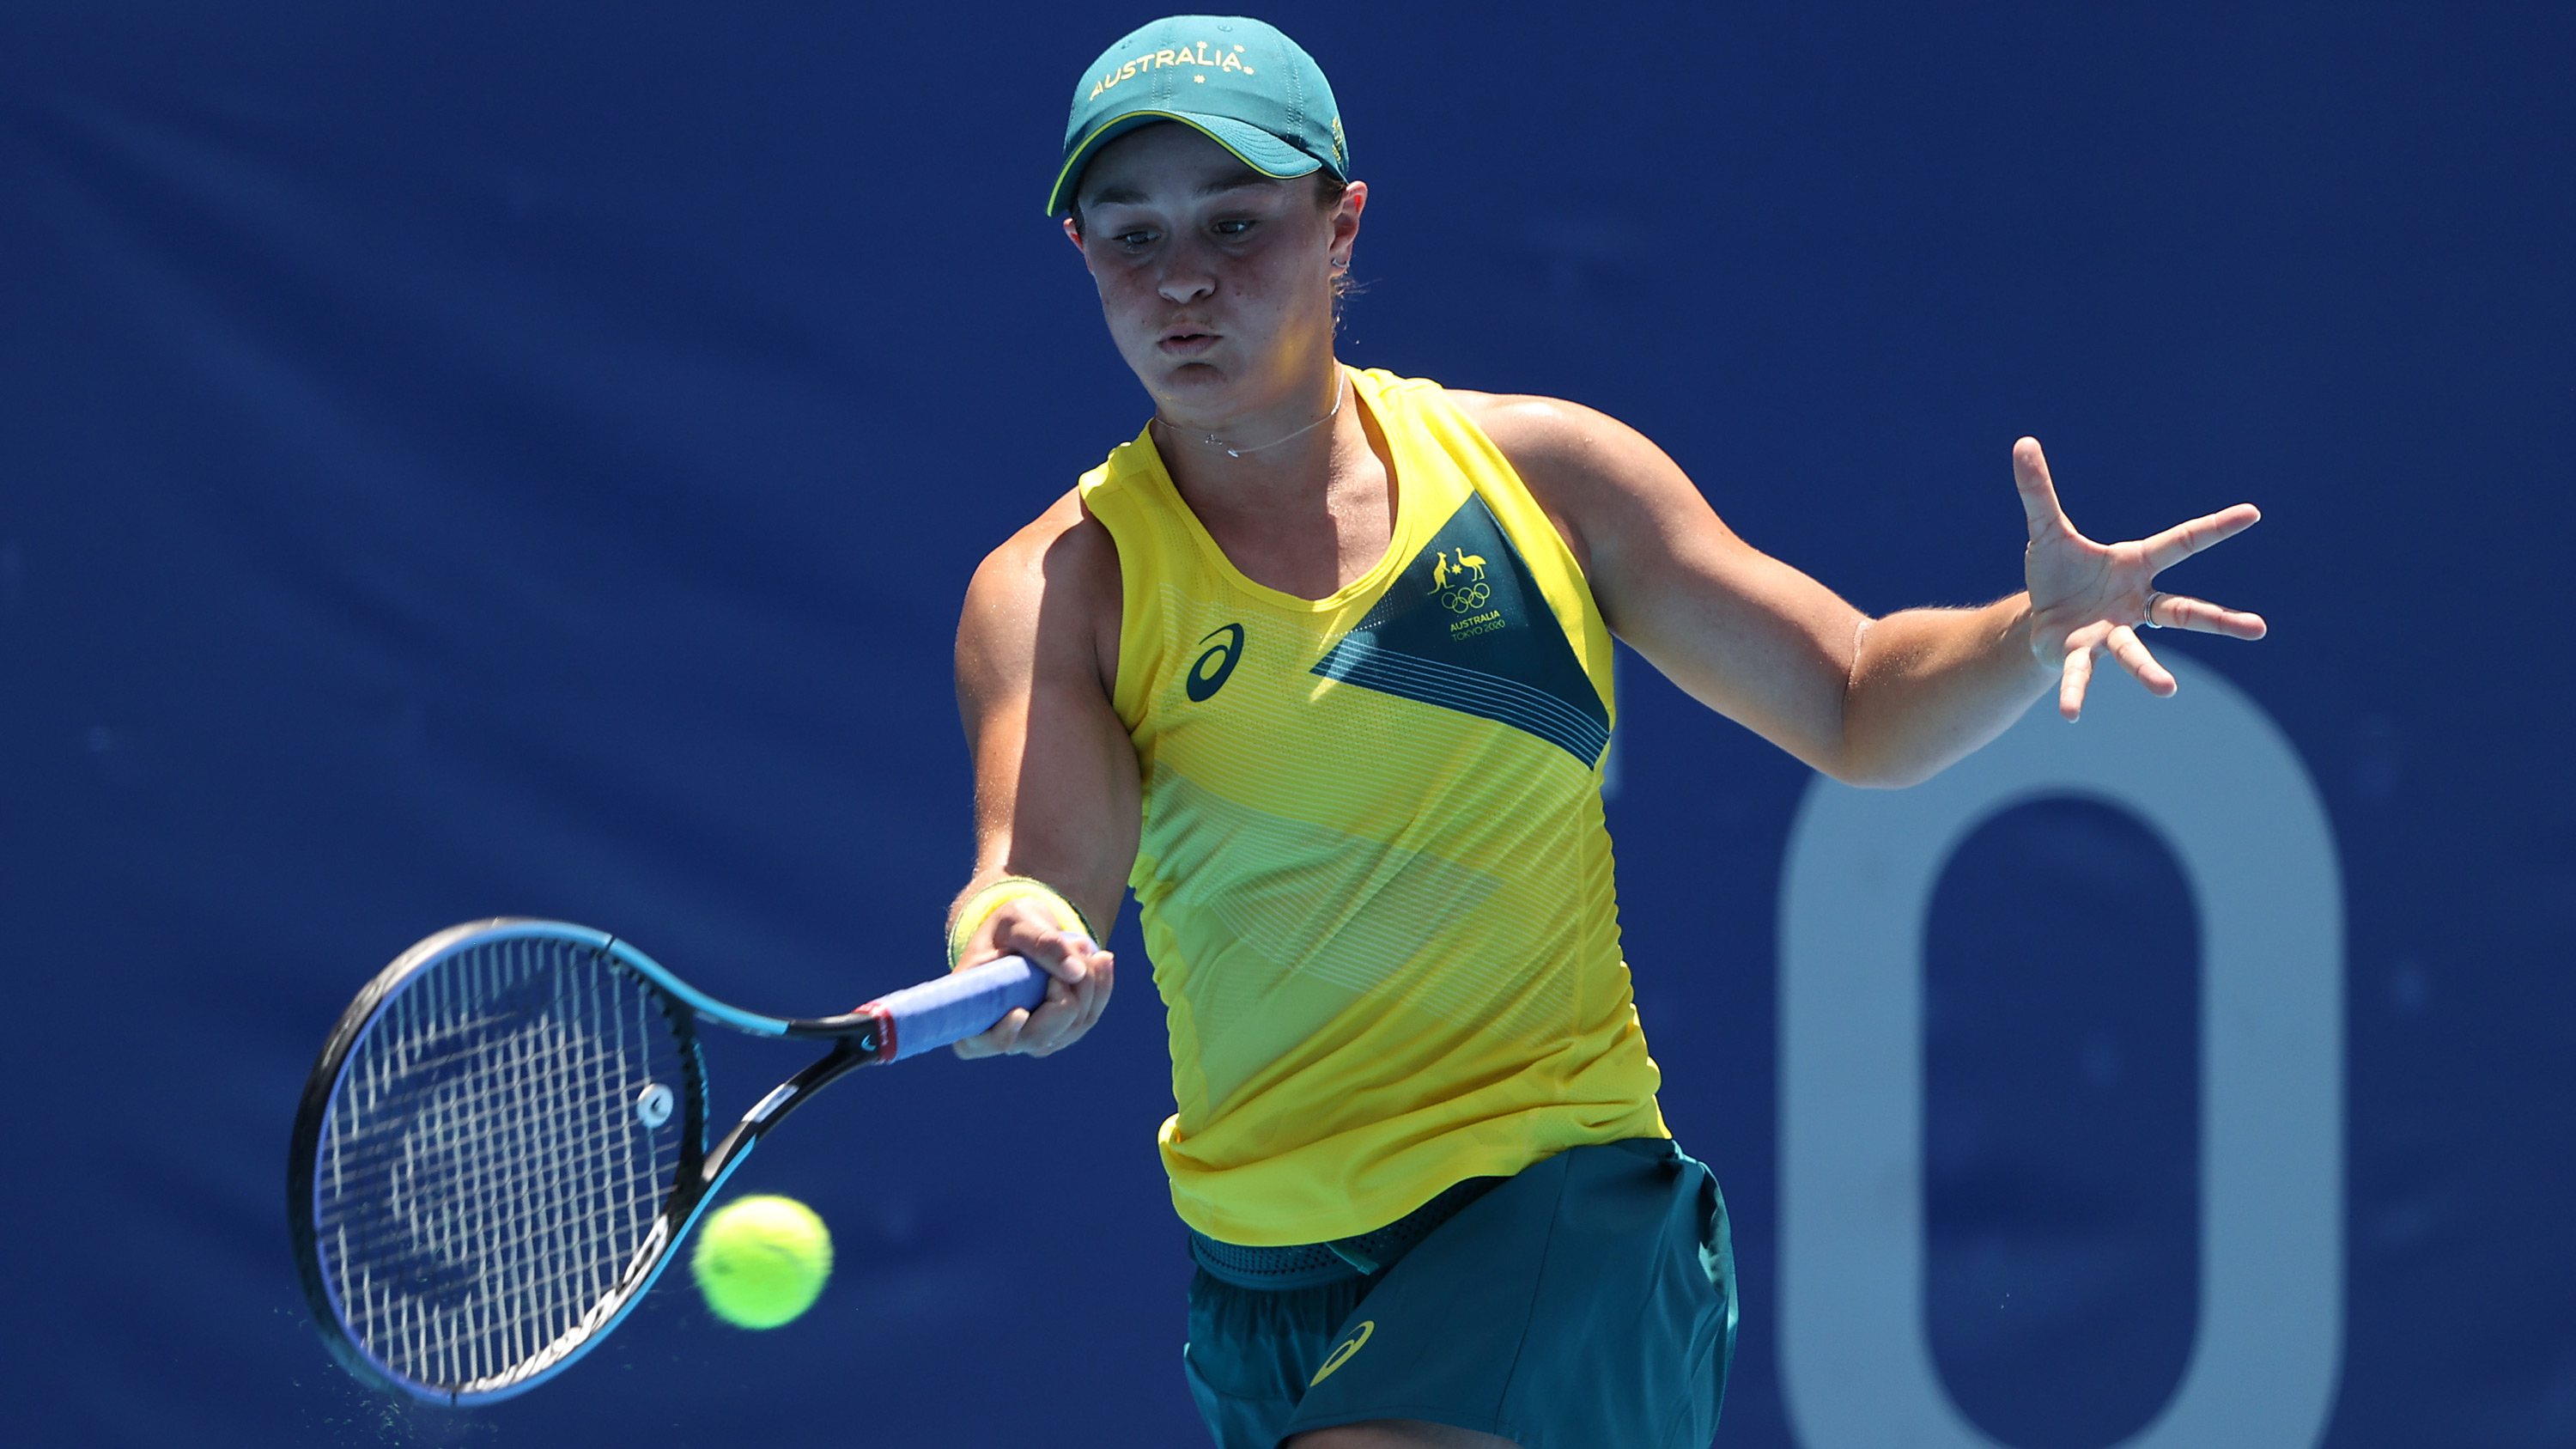 Ashleigh Barty of Team Australia plays a forehand during her Women's Singles First Round match on July 25.